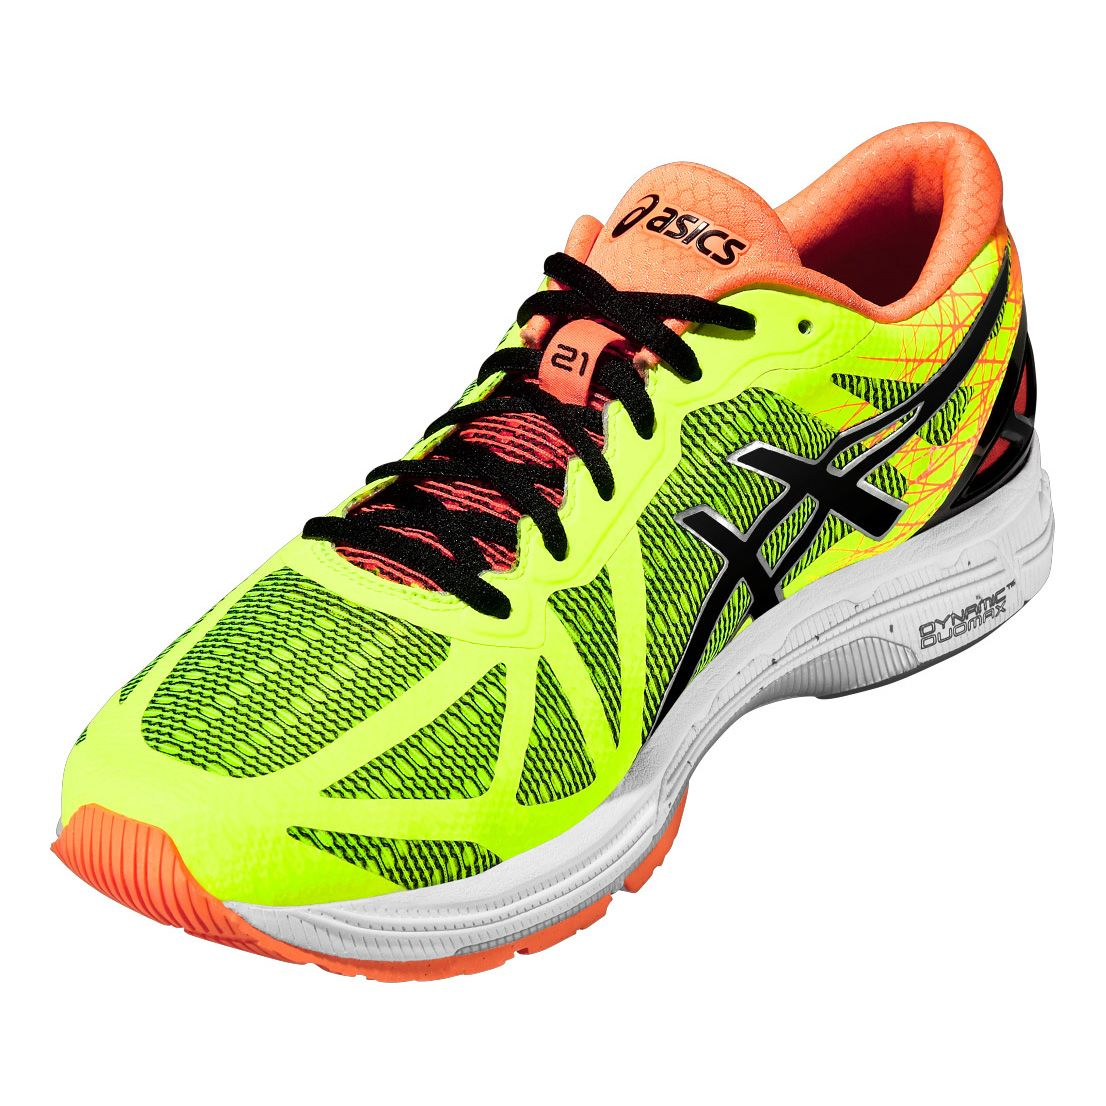 Asics Line Of Running Shoes